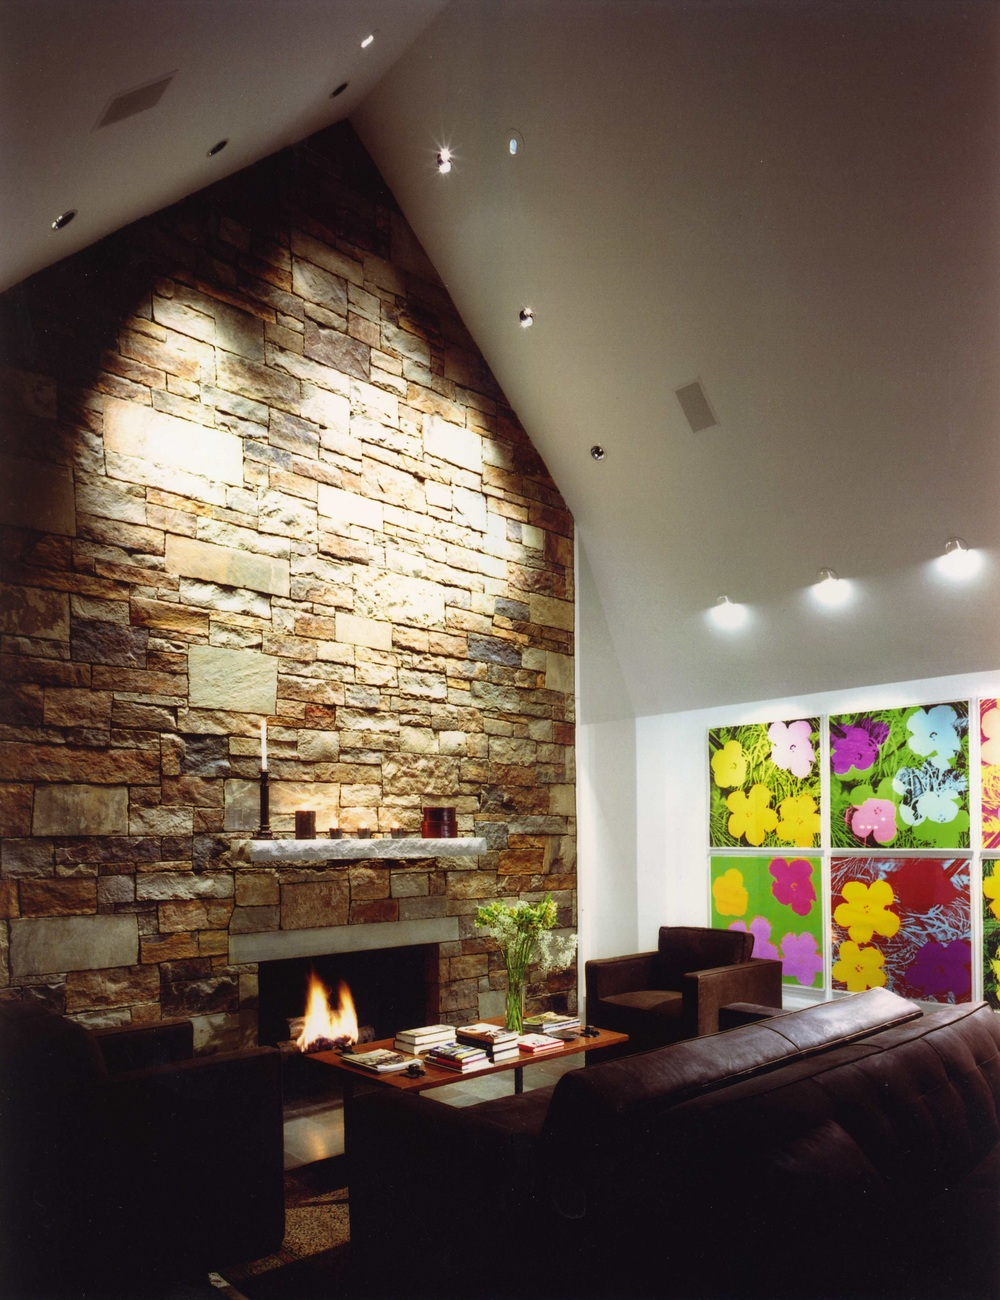 Local stone, glass and Andy Warhol.